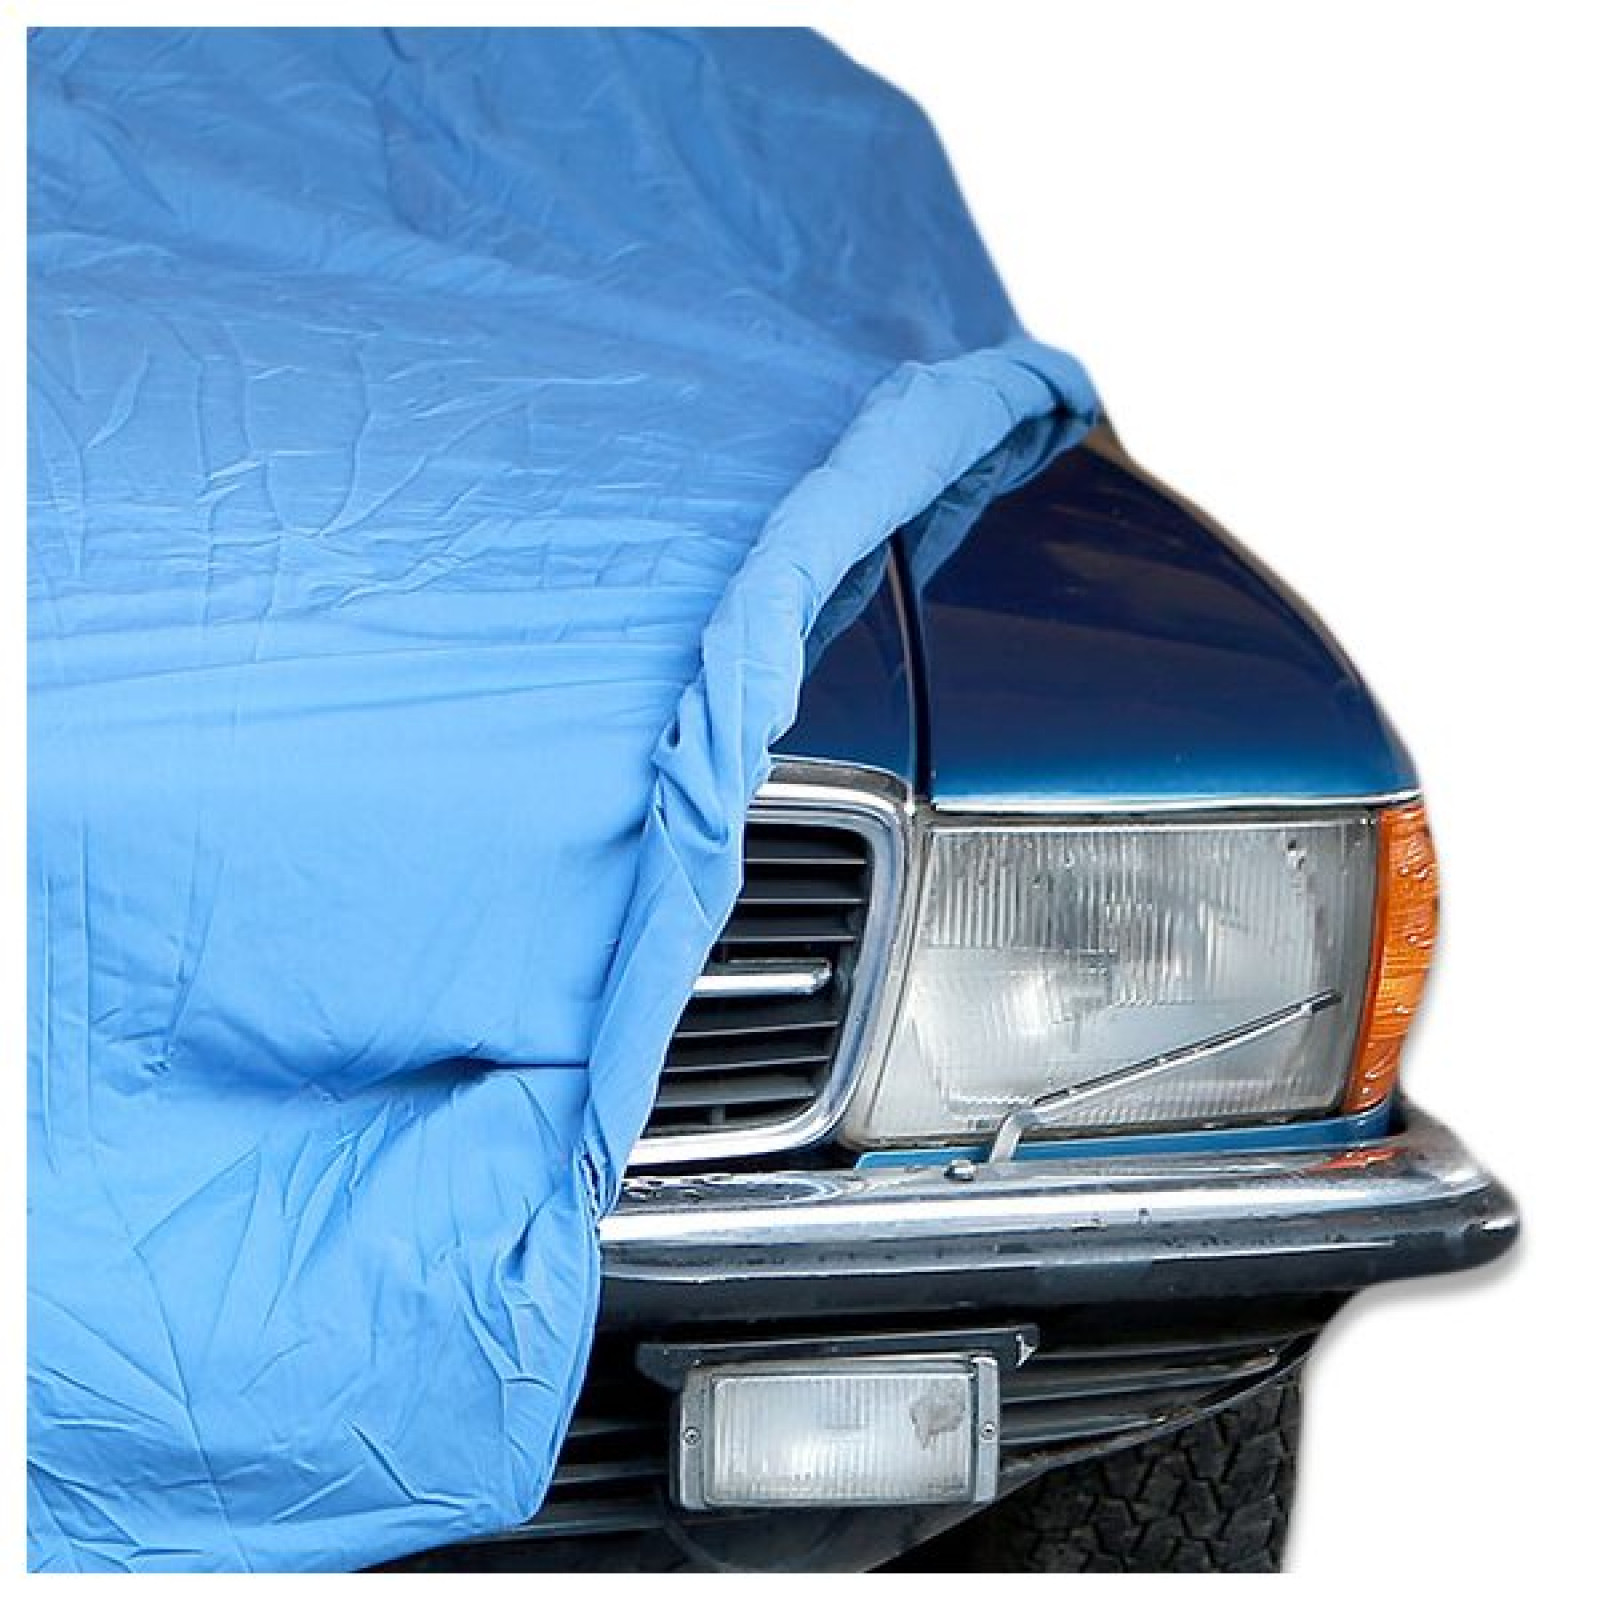 Mercedes benz slc 107 soft indoor blue car cover the sl shop for Mercedes benz car covers